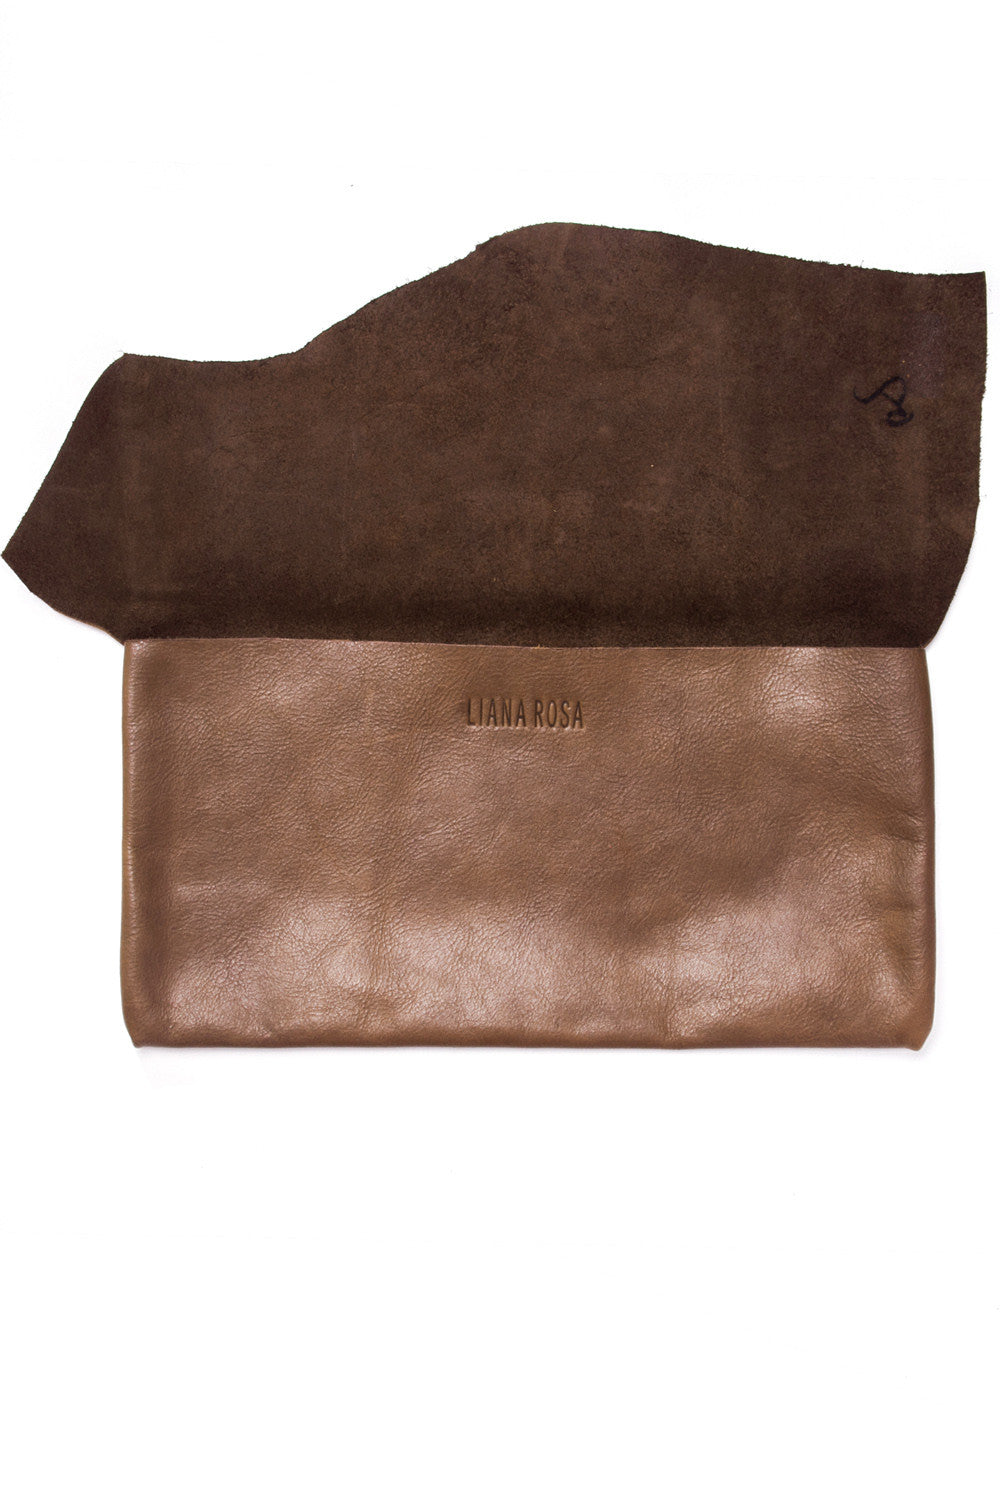 Susi Brown Leather Raw Sling Clutch Open View by Liana Rosa